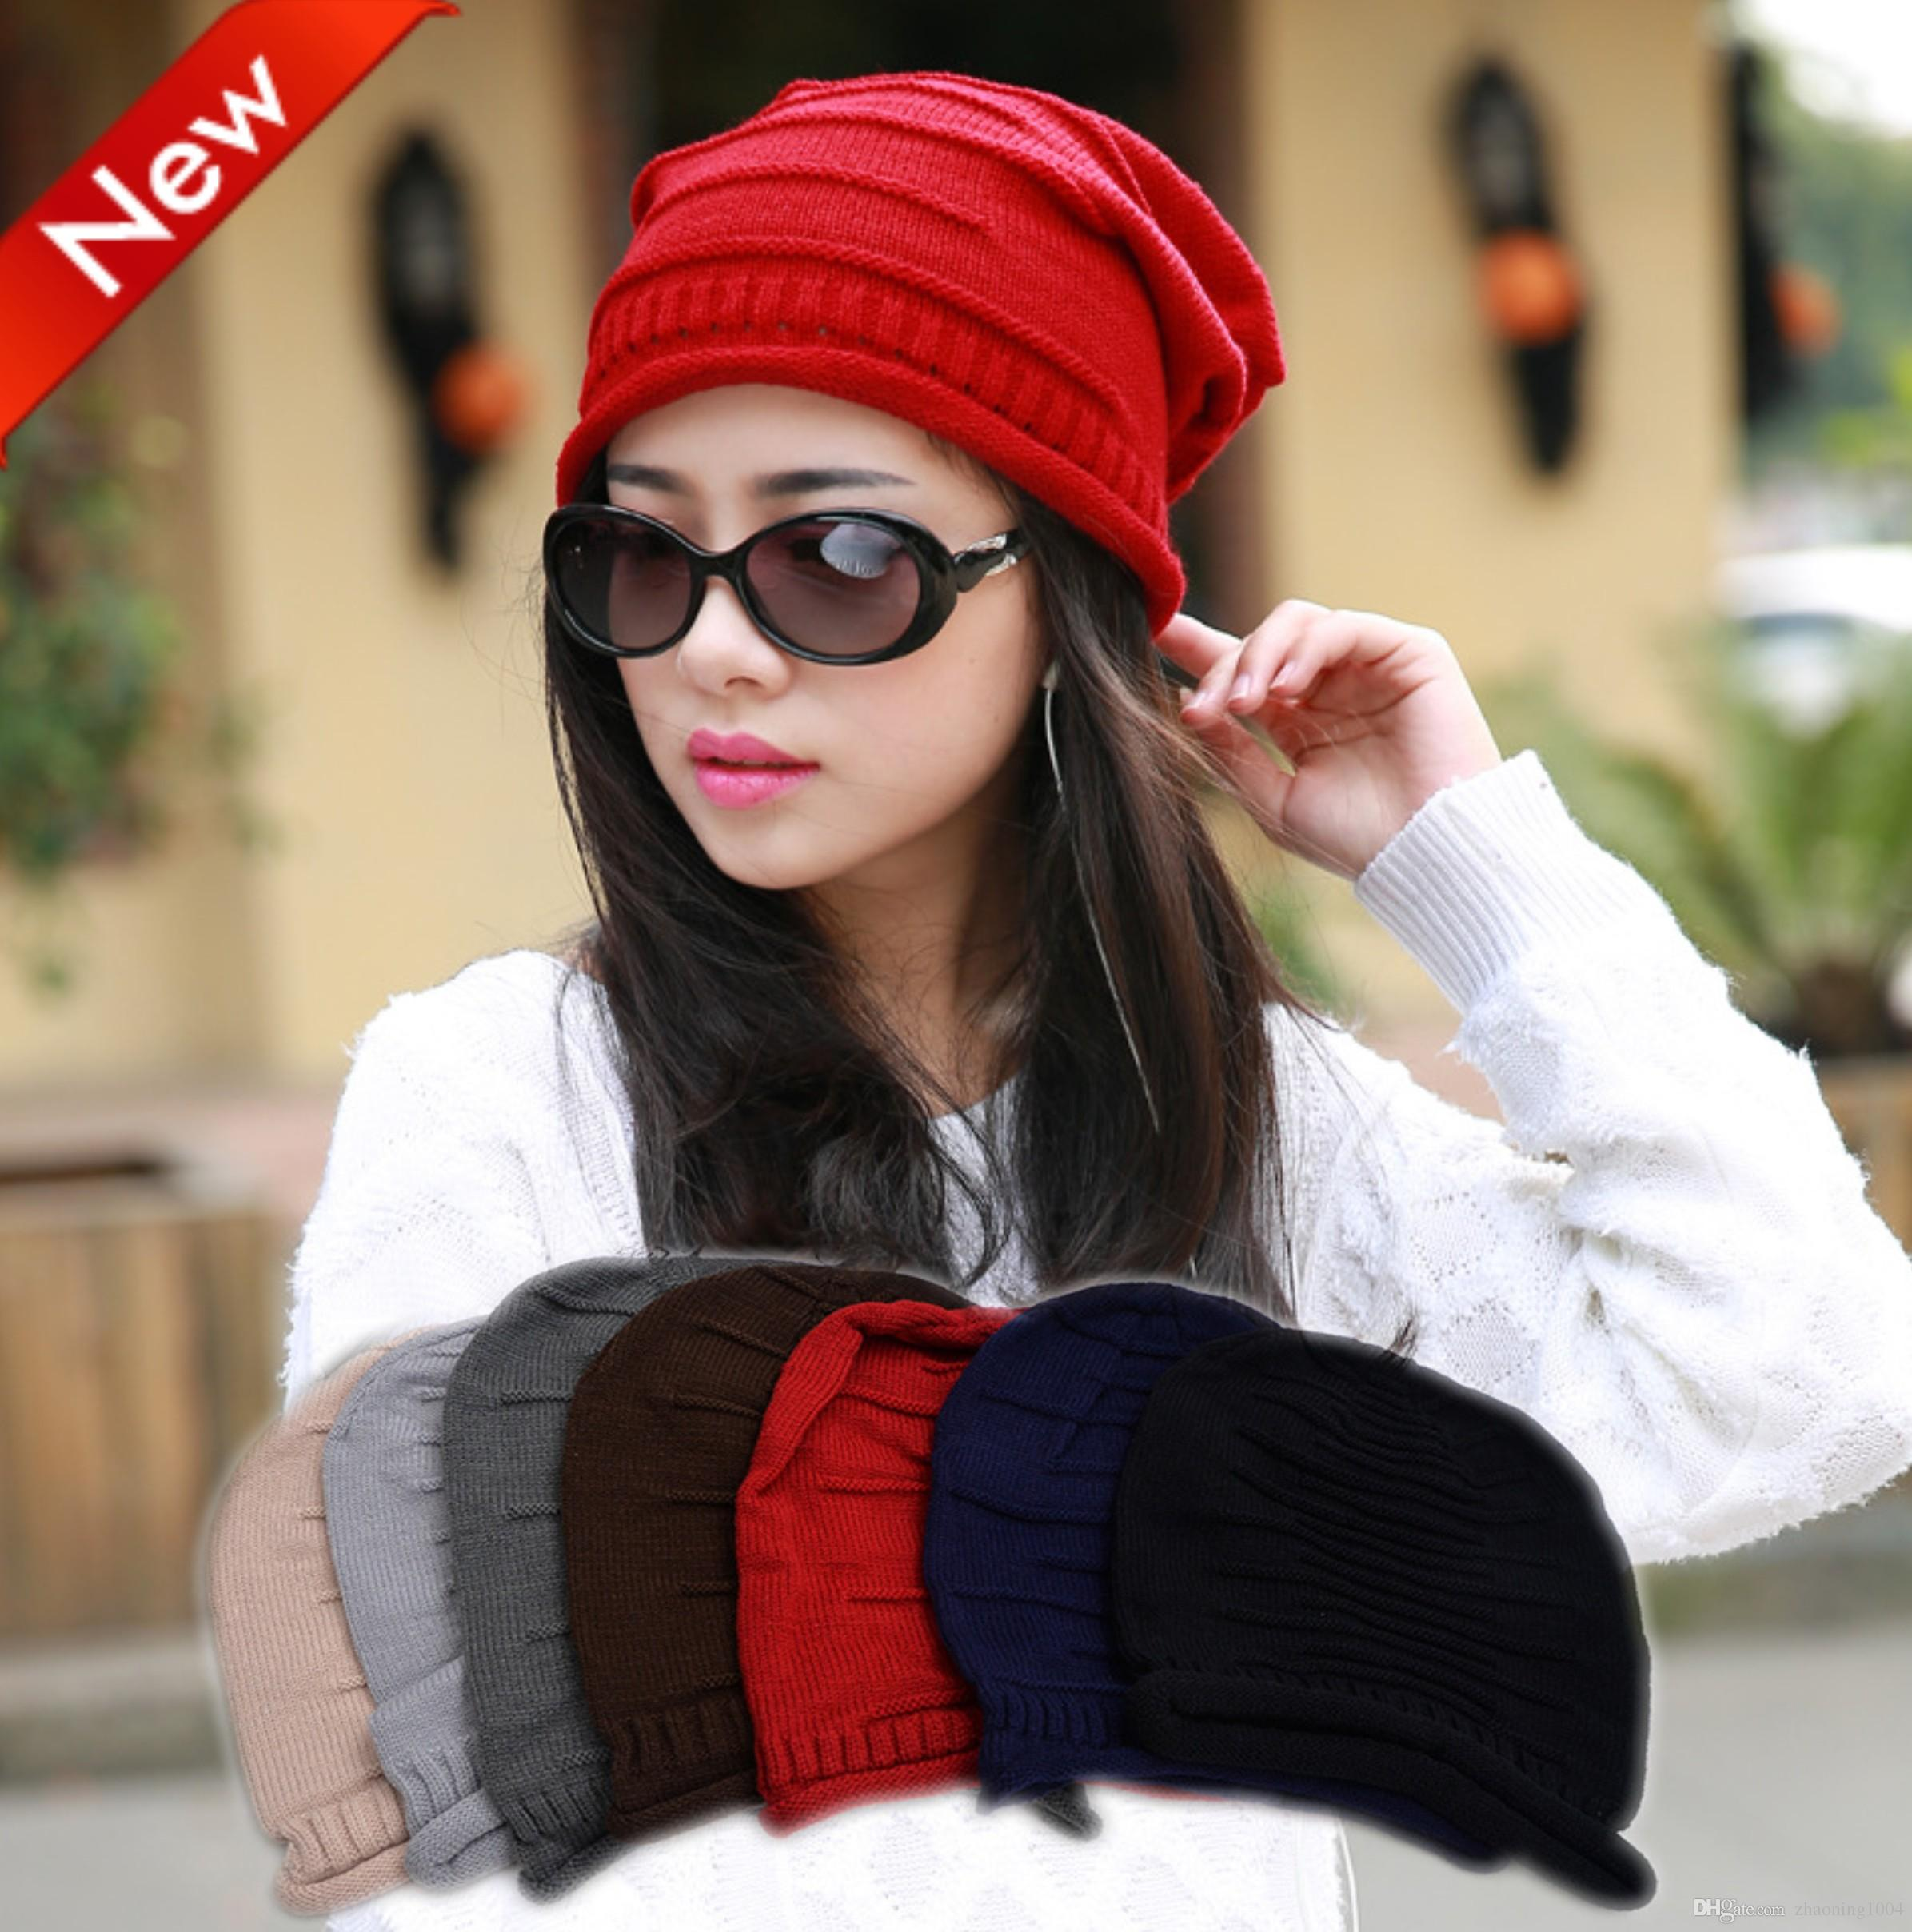 Designer Ladies Plain Knitted Slouchy Beanies Mens Womens Fancy Winter Head  Warmer Hats Adults Woman Chemo Cap Red Black Beige 7 Solid Color Knit Hat  Hats ... 0a86c5007a4